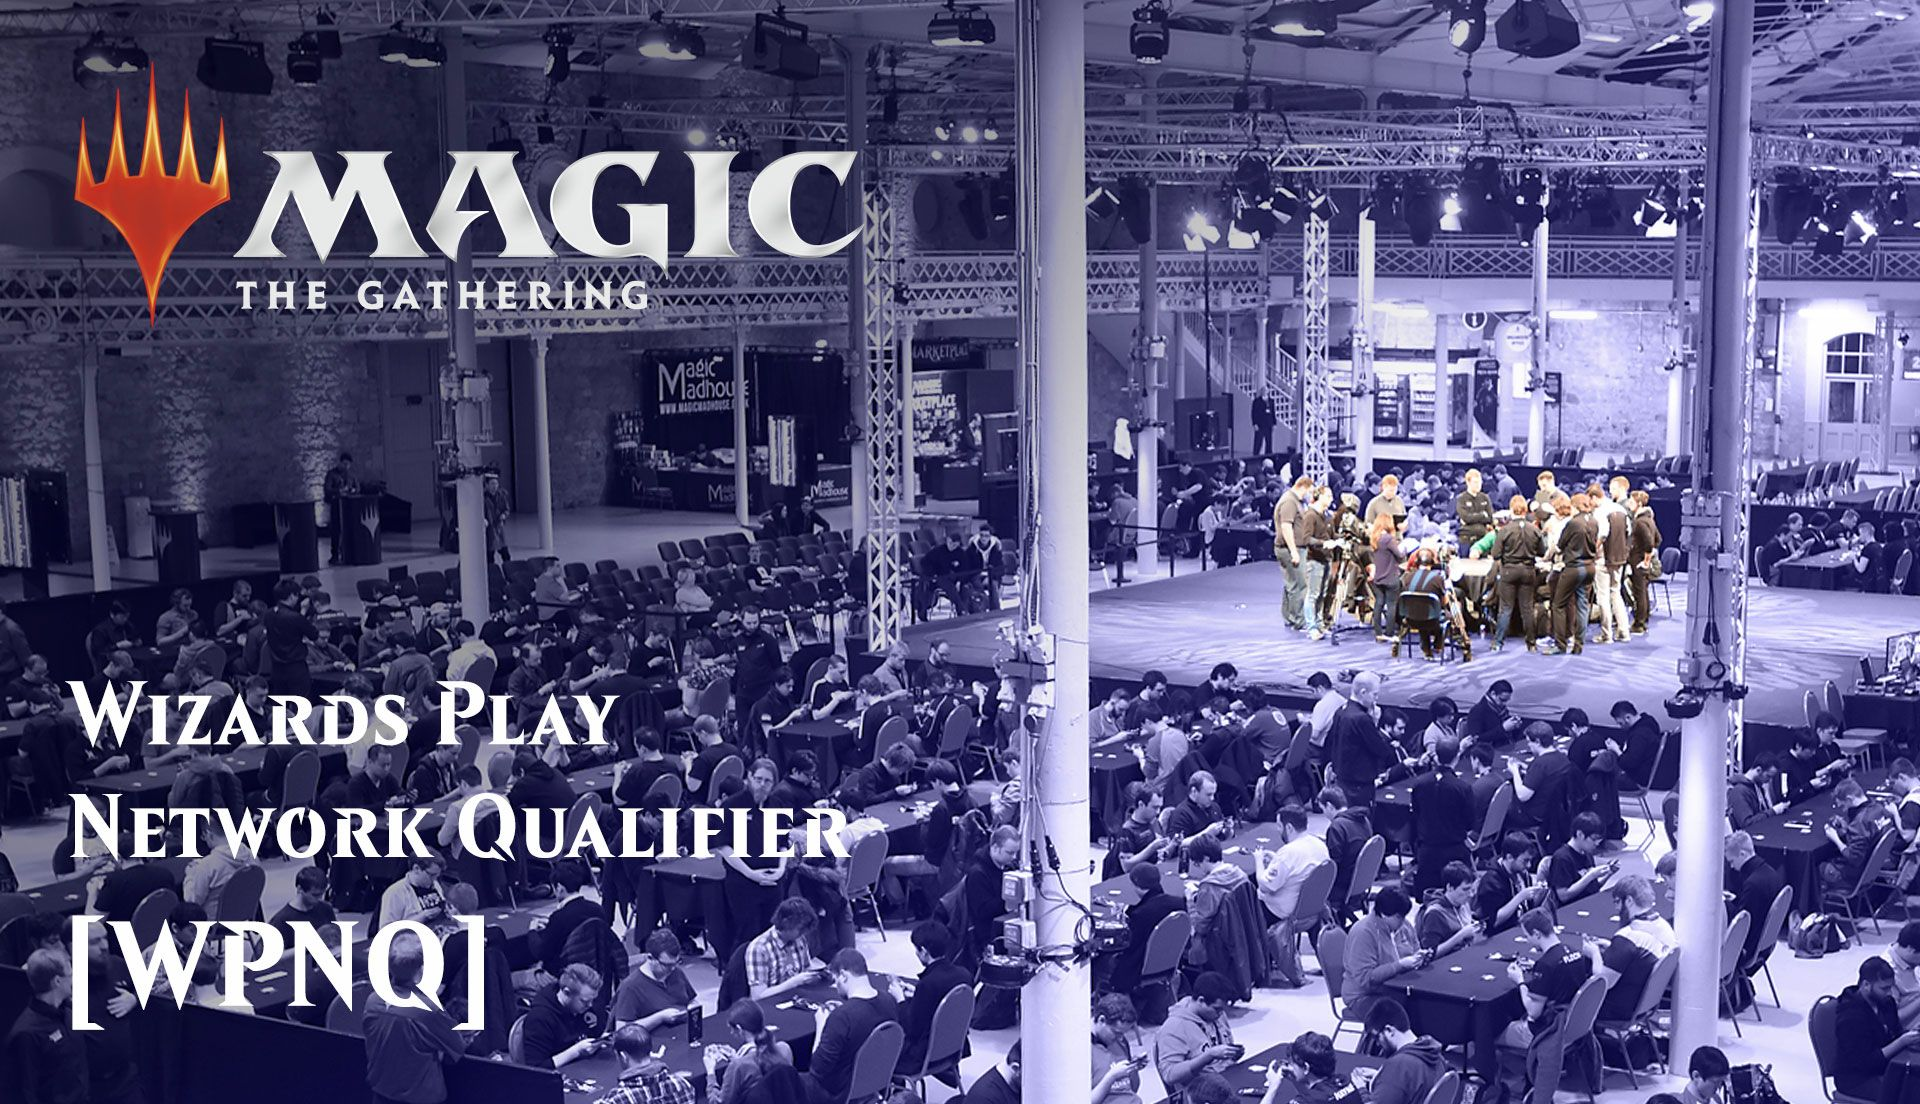 WPNQ – Wizards Play Network Qualifier